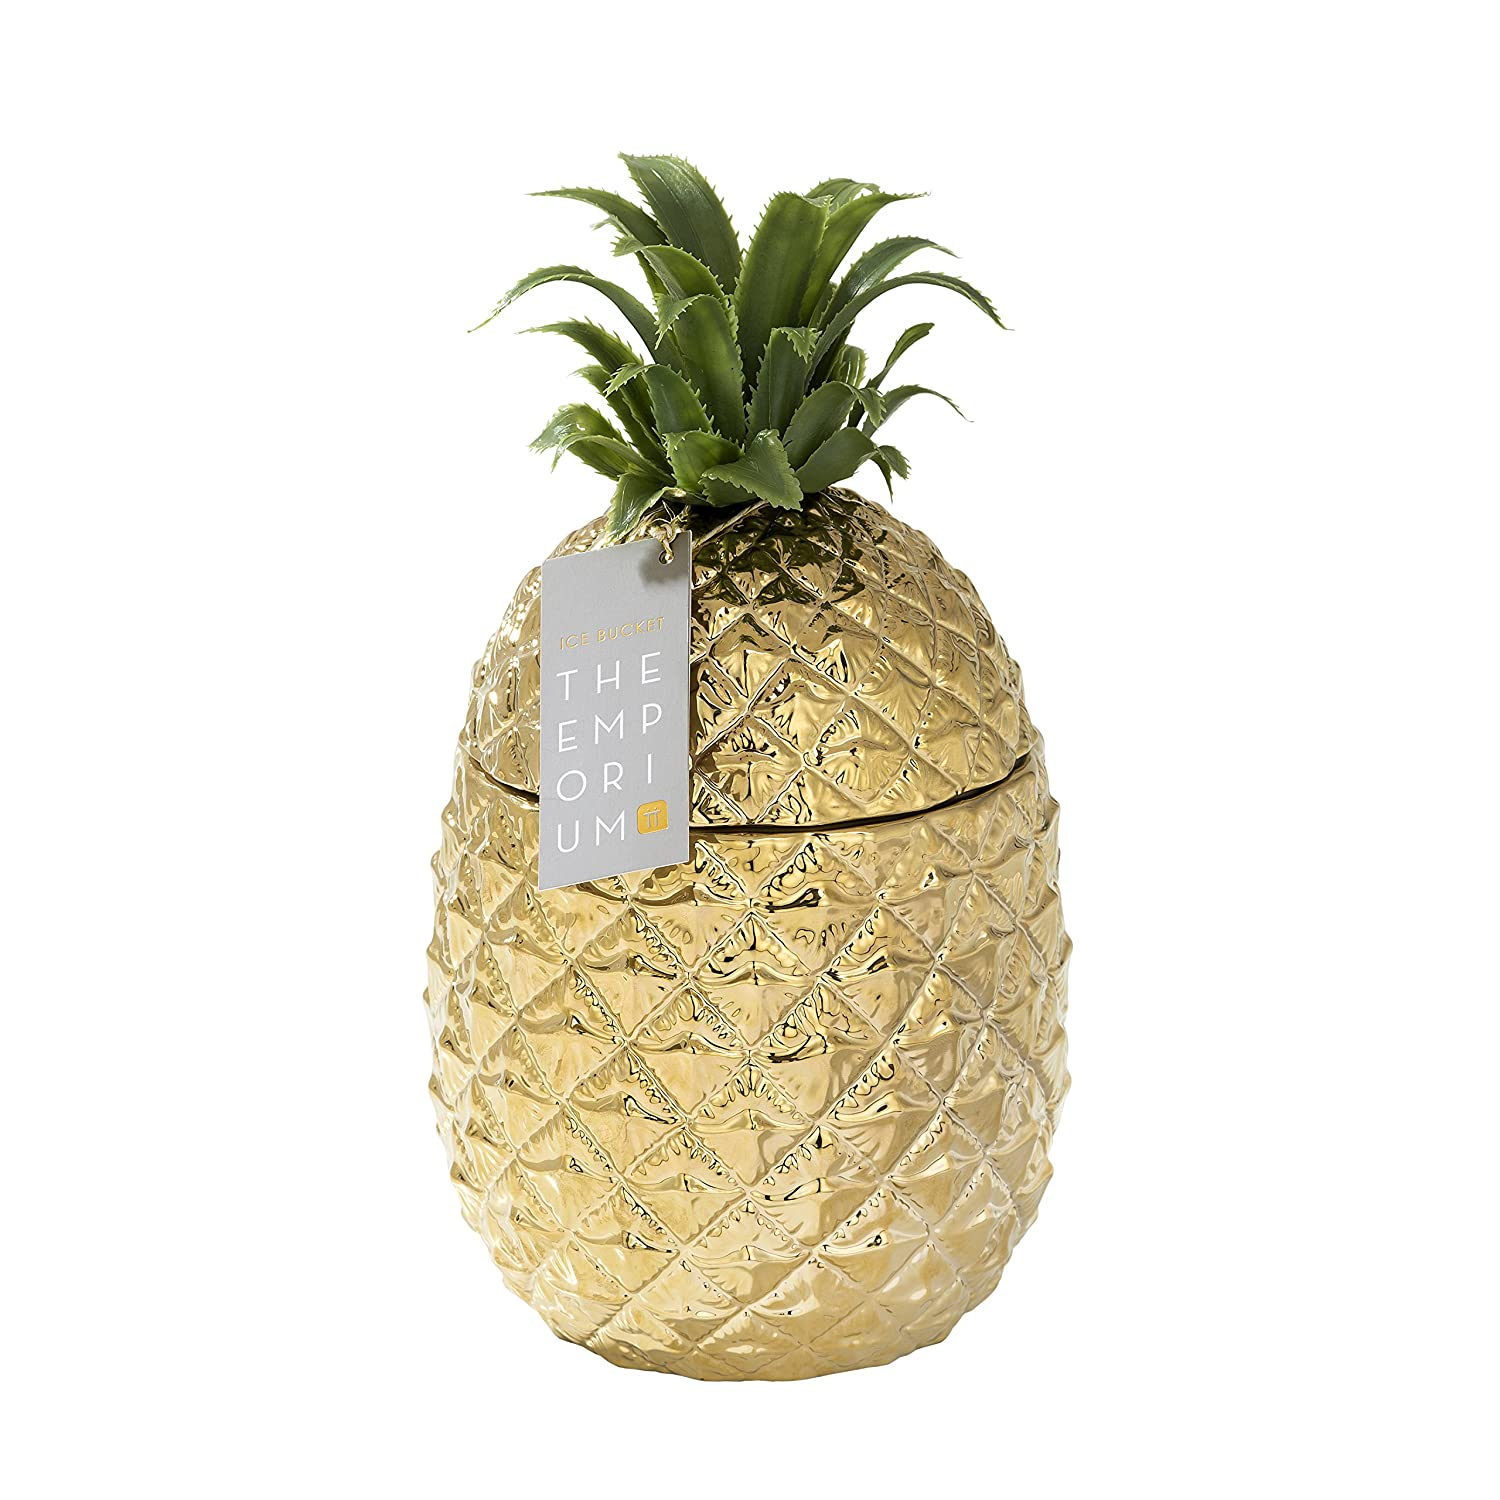 723336bd Talking Tables Emporium Gold Pineapple Ceramic ICE Bucket, Paper,  Multi-Colour, 21.5 x 21.5 x 27 cm: Amazon.co.uk: Kitchen & Home